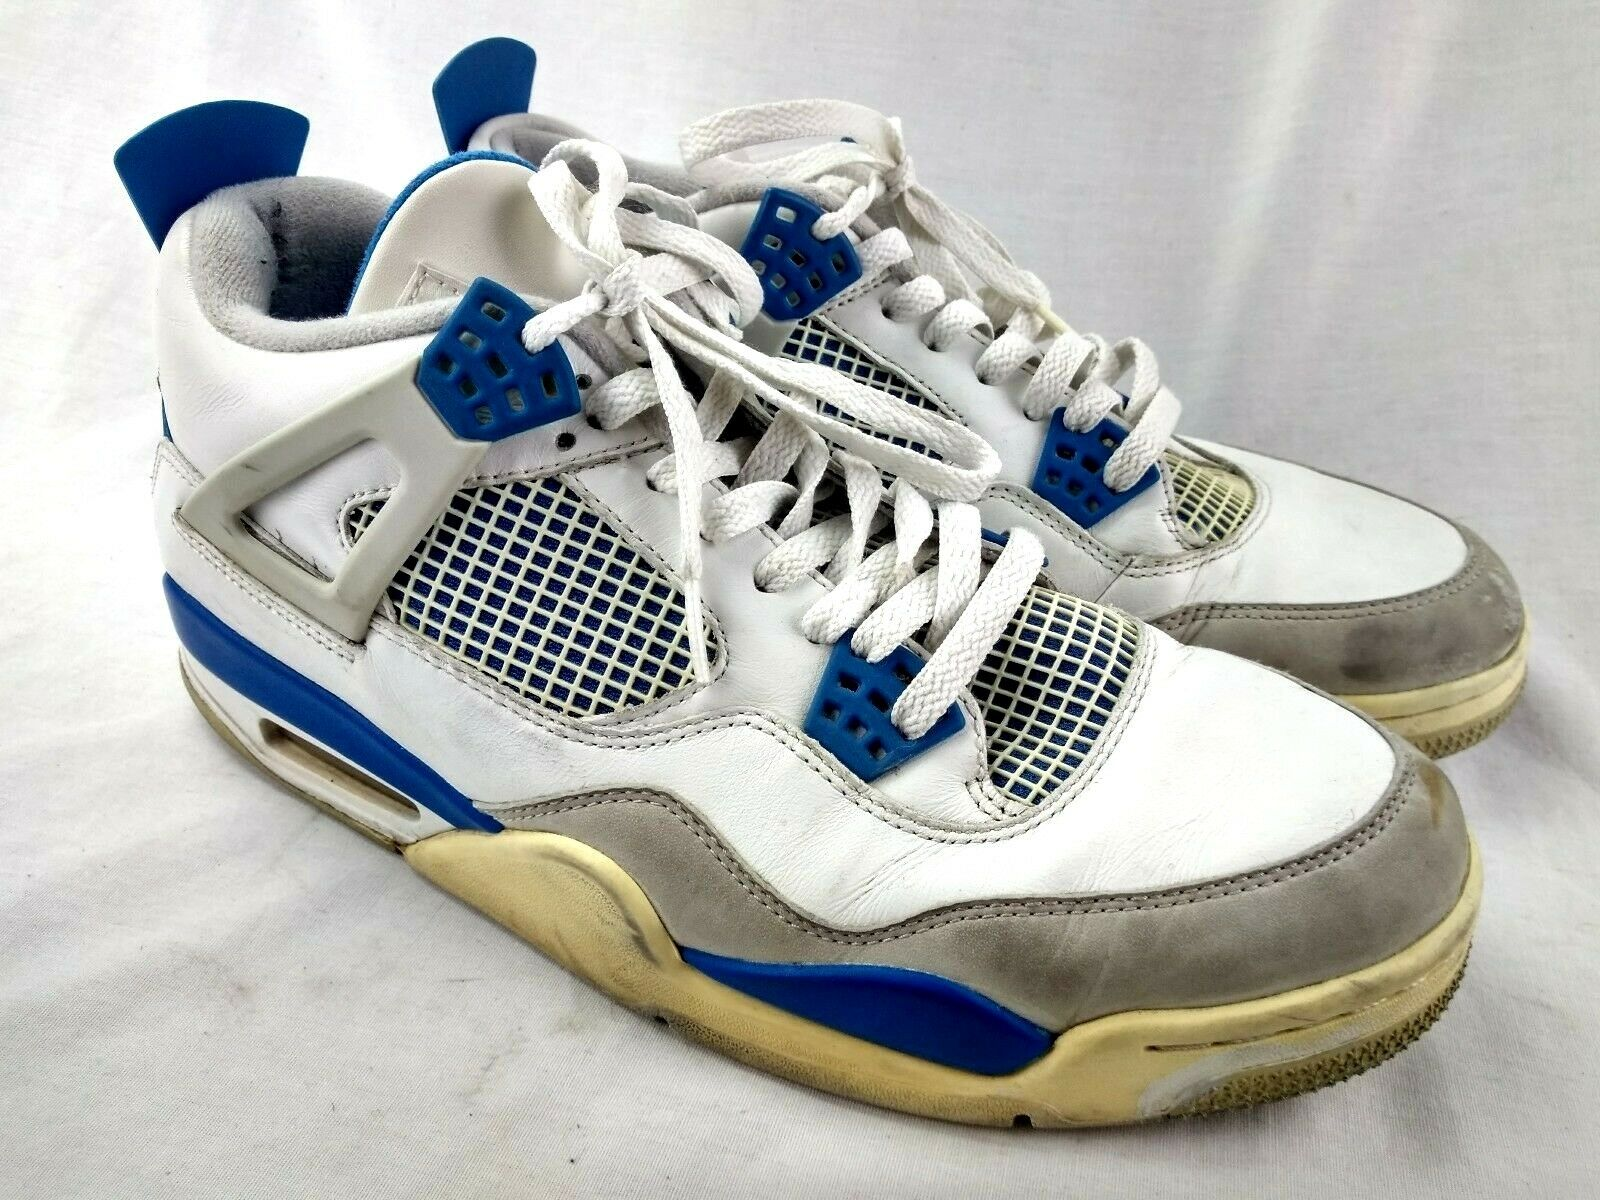 090e991d571c Nike Air Jordan 4 IV Retro Retro Retro Military blueee 308497-105 Men Sz 11